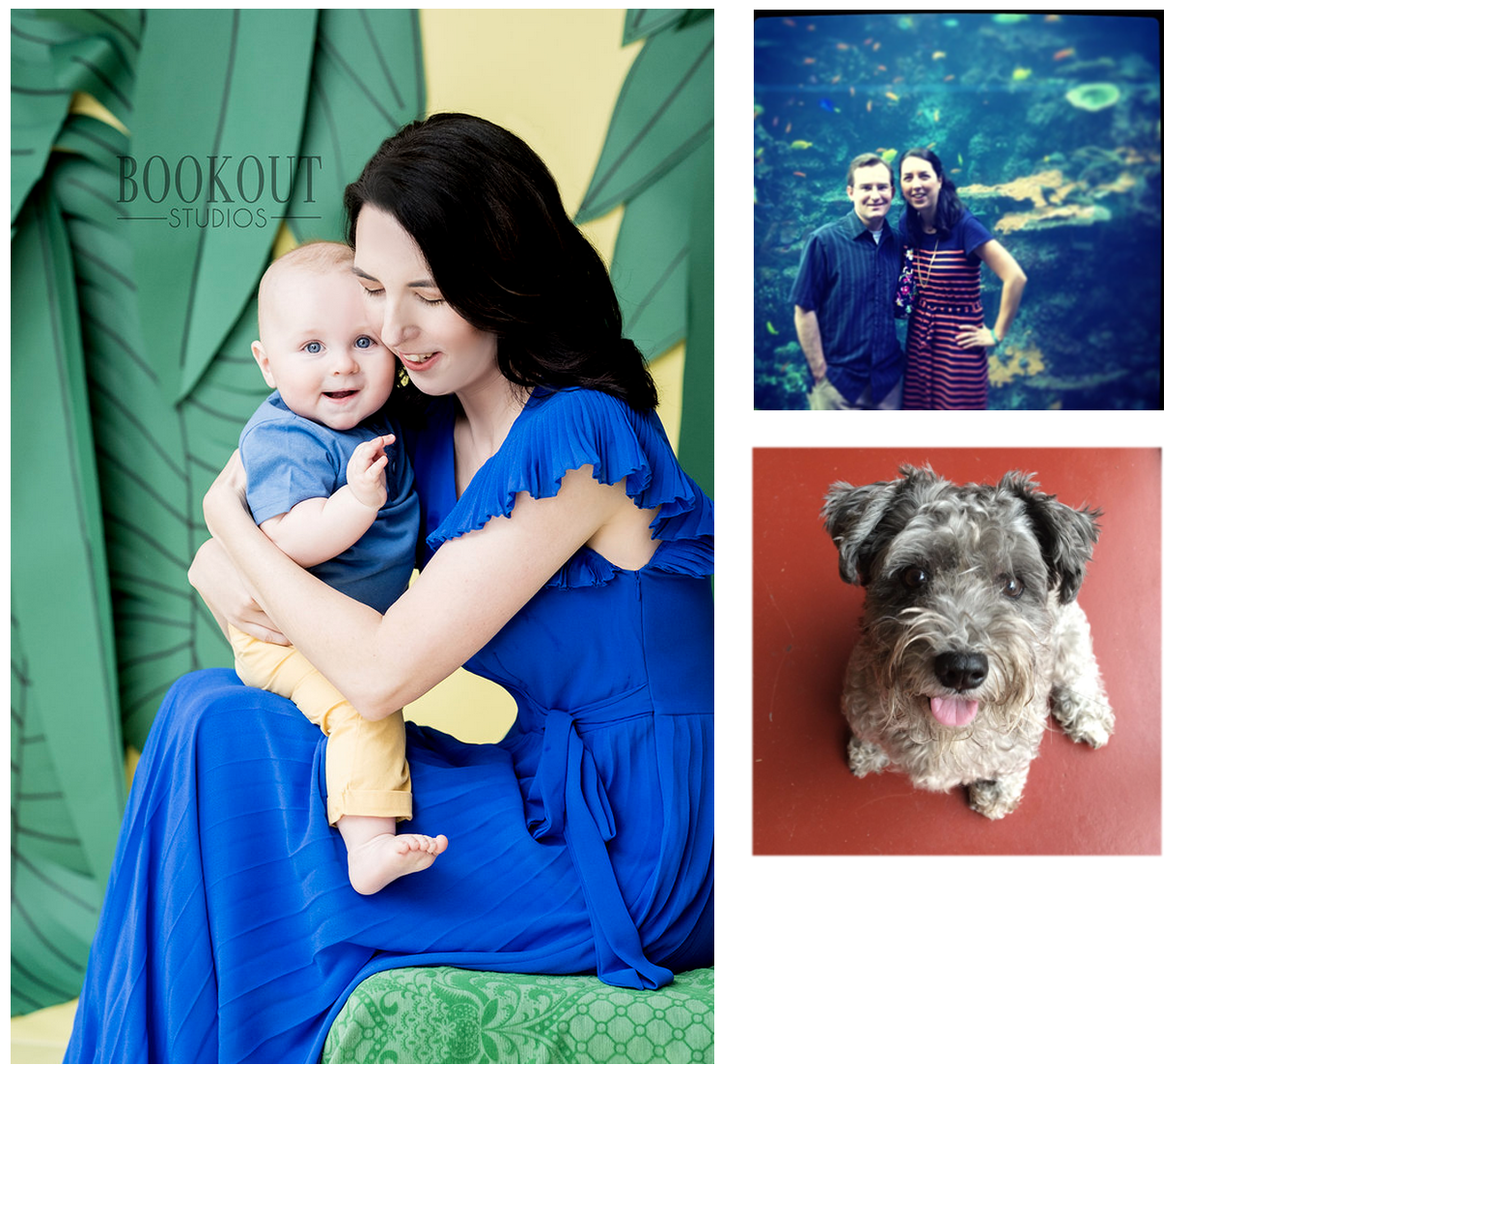 Illustrator Colleen Johnson lives in Huntsville, AL with her husband Chris, one year old son Ryland and their dog Emmy.